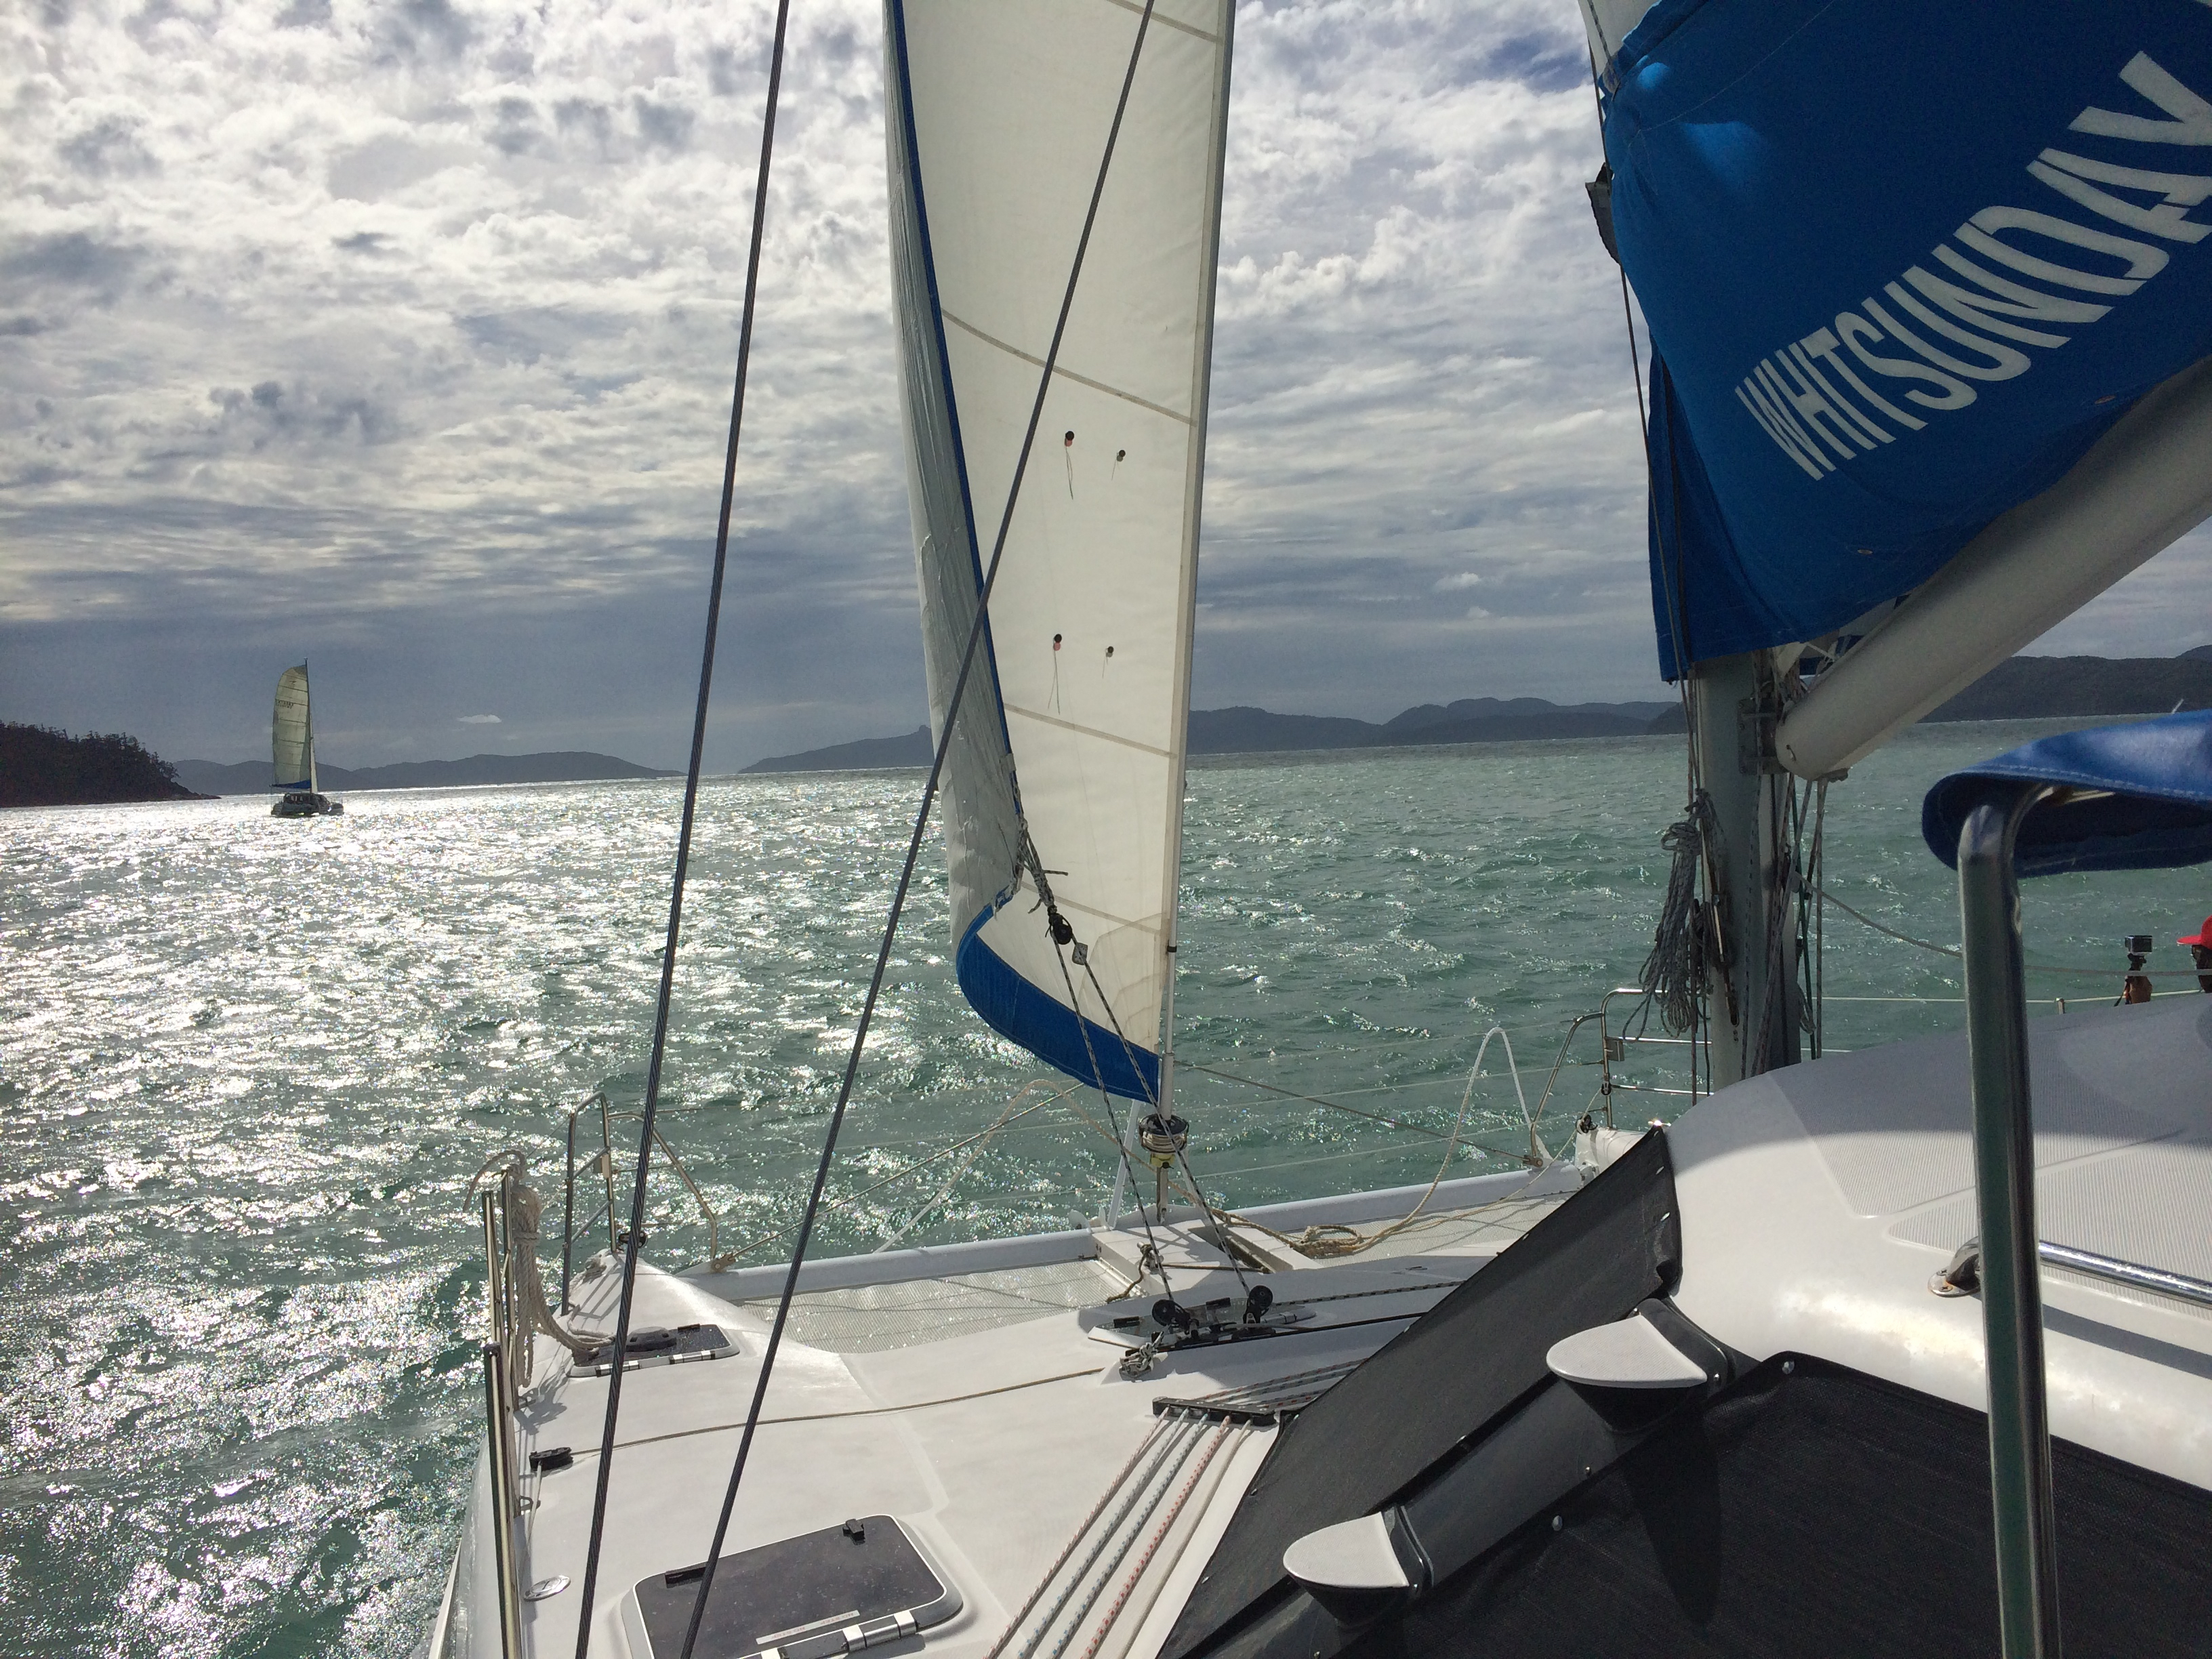 Yoohoo Whitsunday Yacht Race.